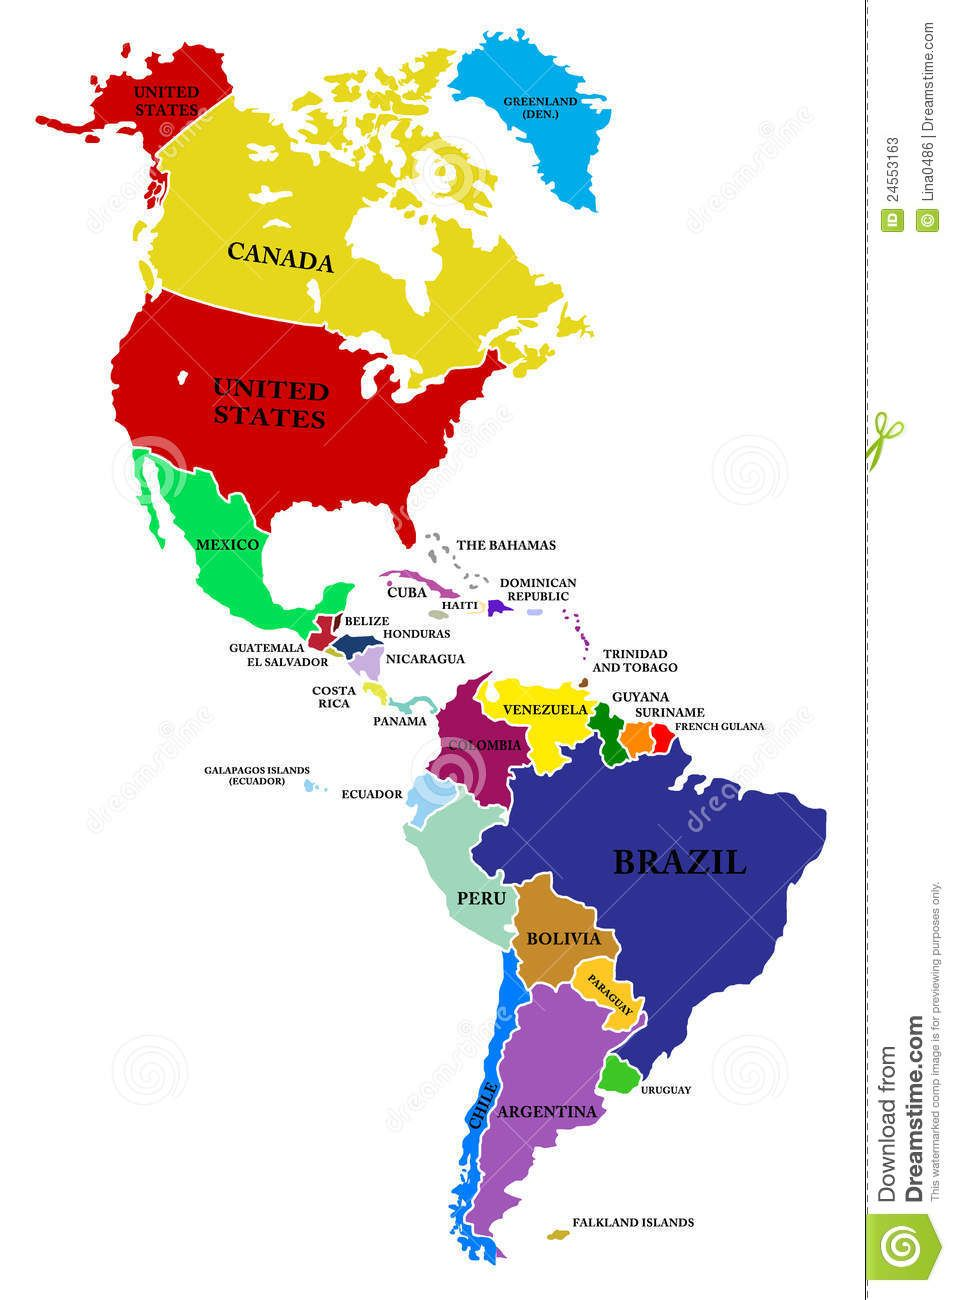 Pin by Hany Samir on South america map | South america map, Map